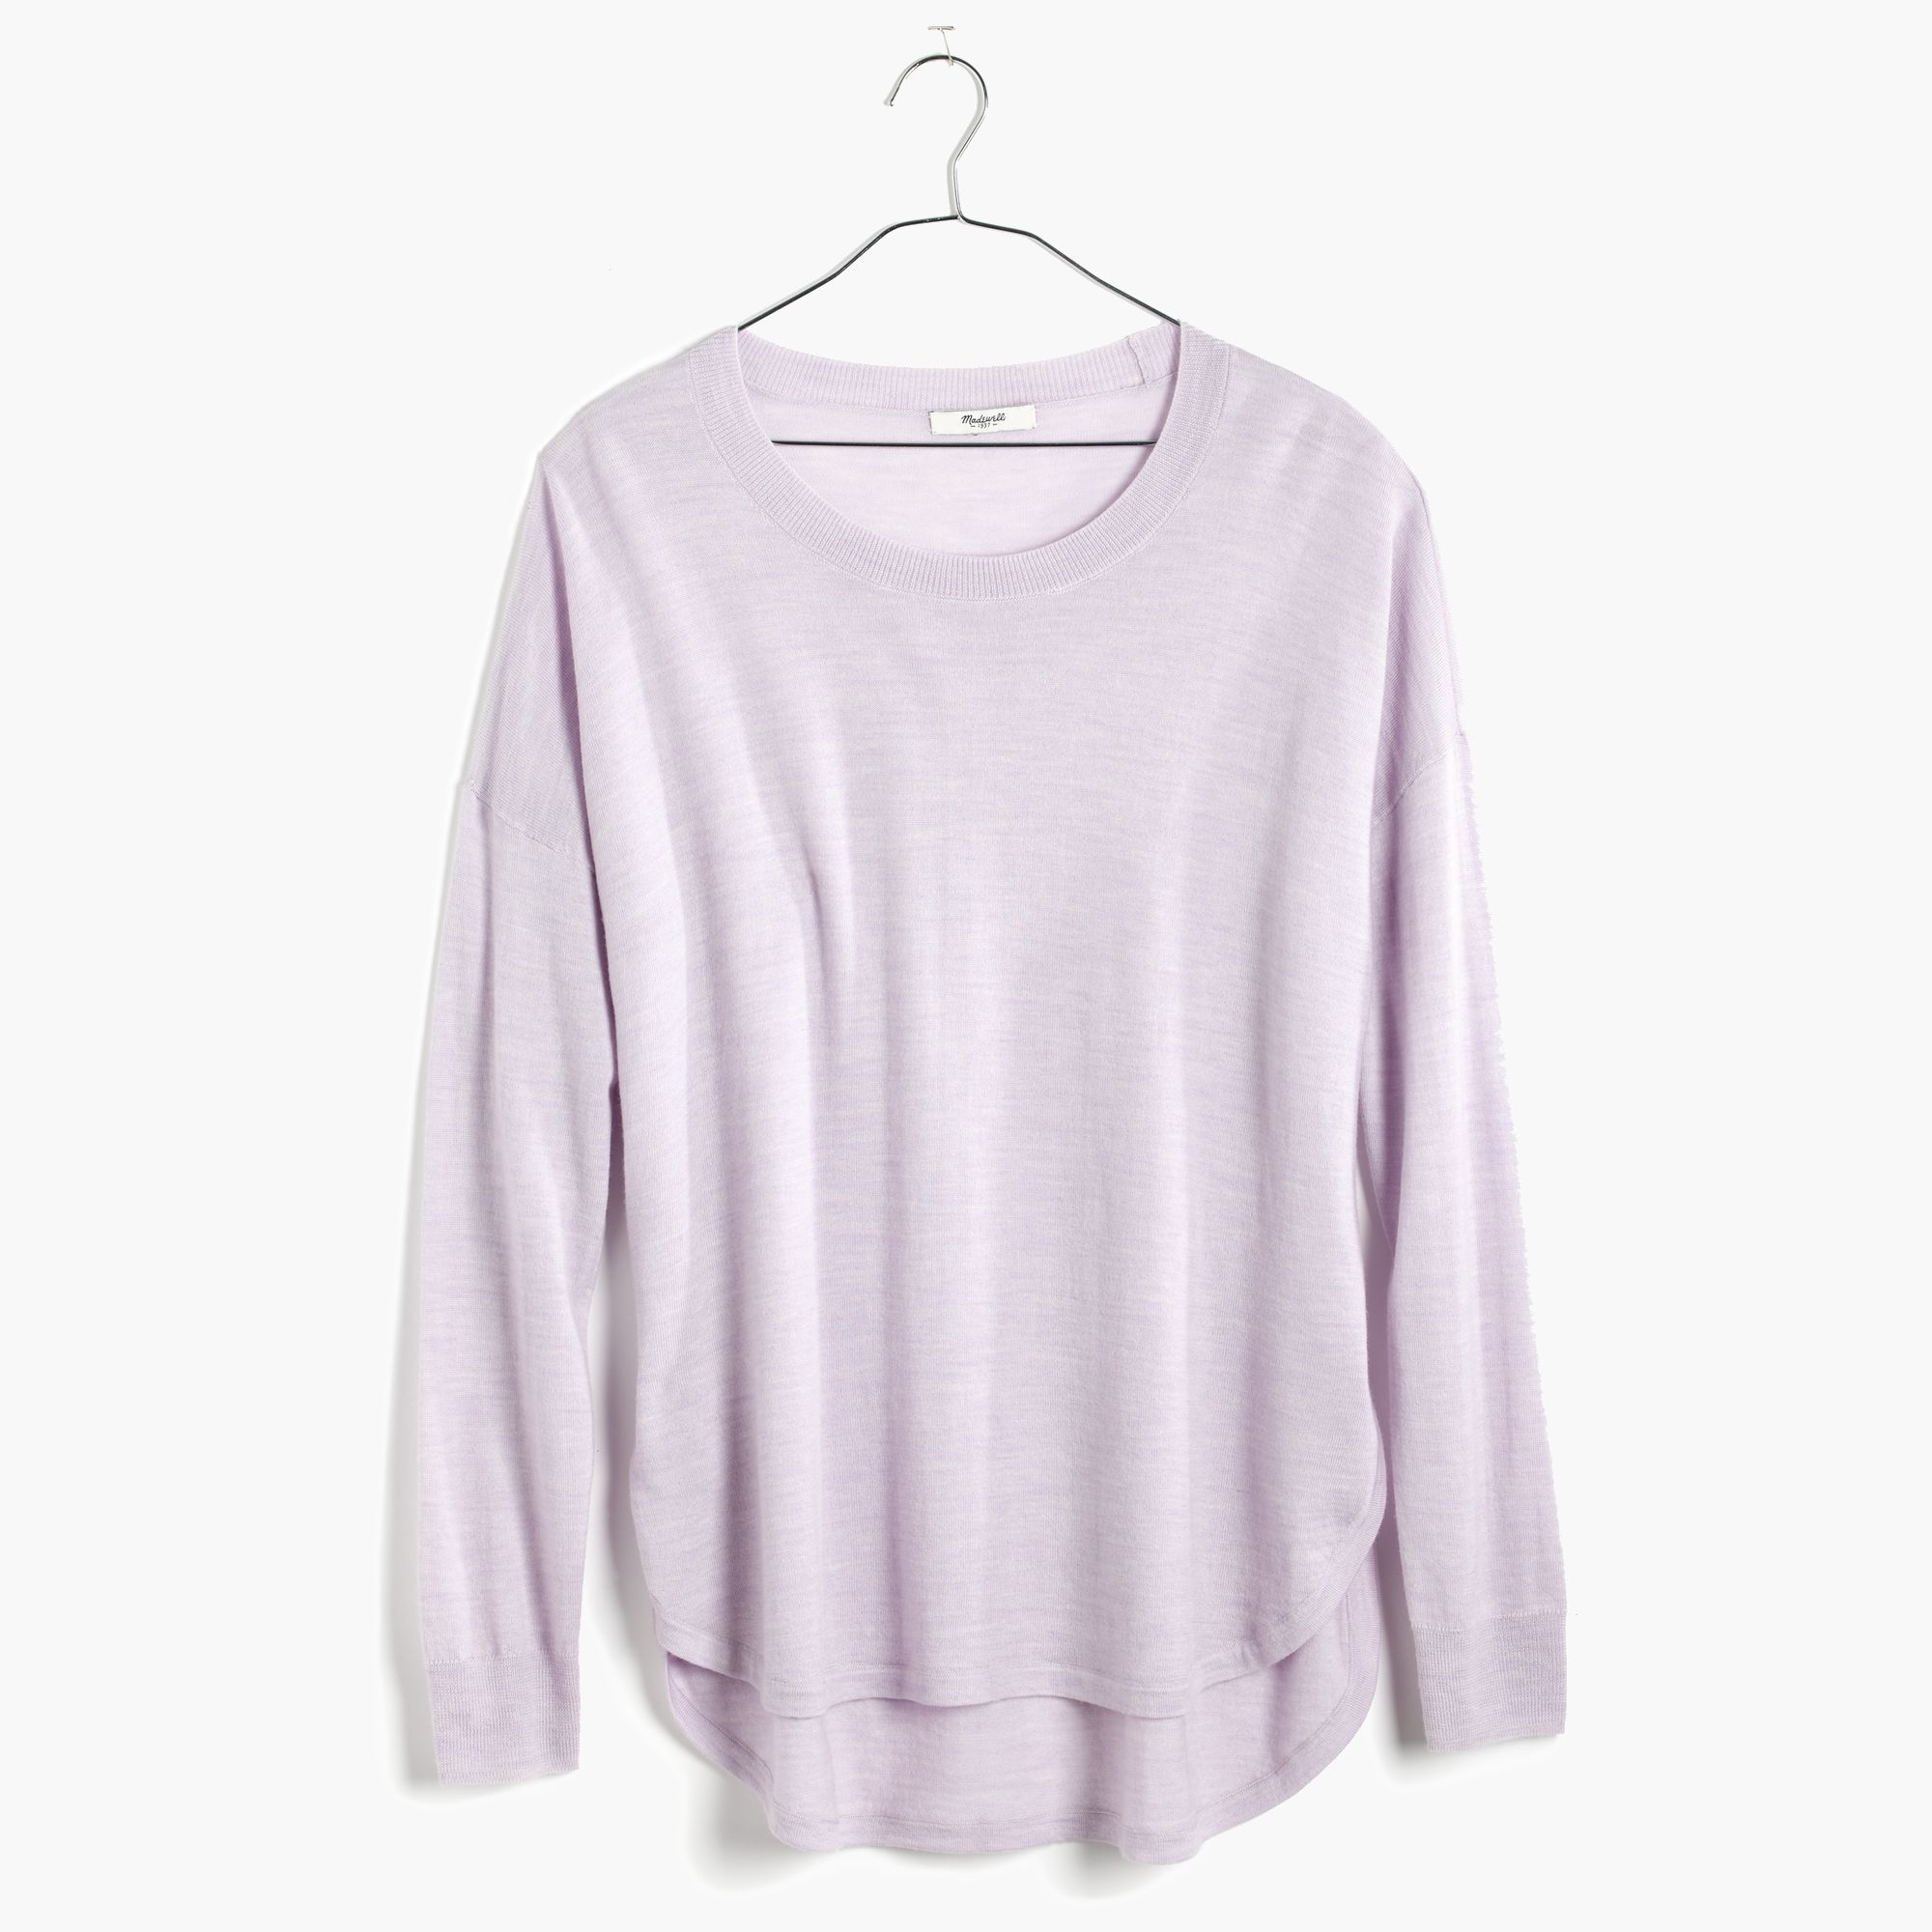 Madewell Northstar Pullover Sweater in Purple | Lyst